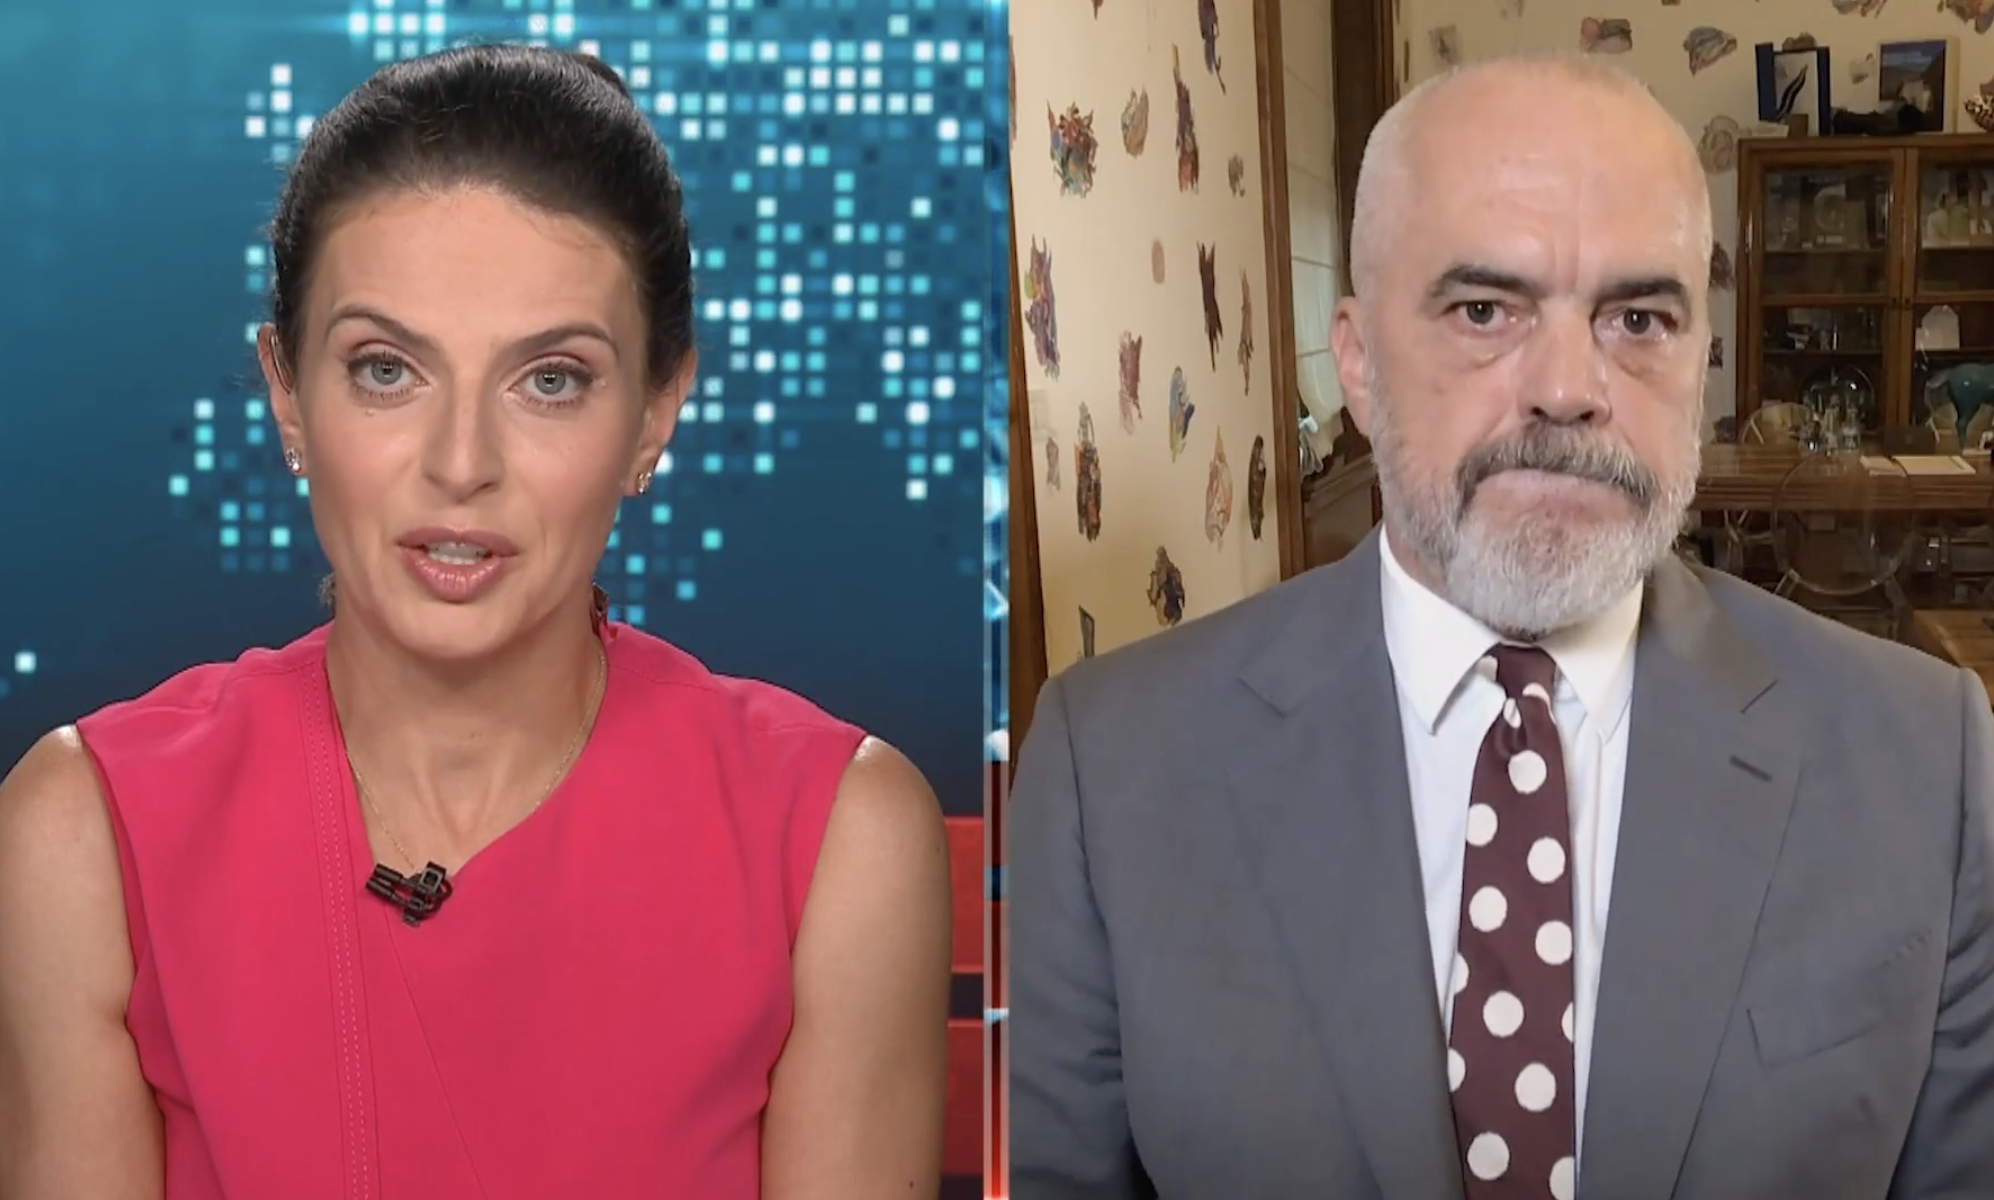 Albania: We will shelter 4000 Afghan refugees, says Rama for CNN